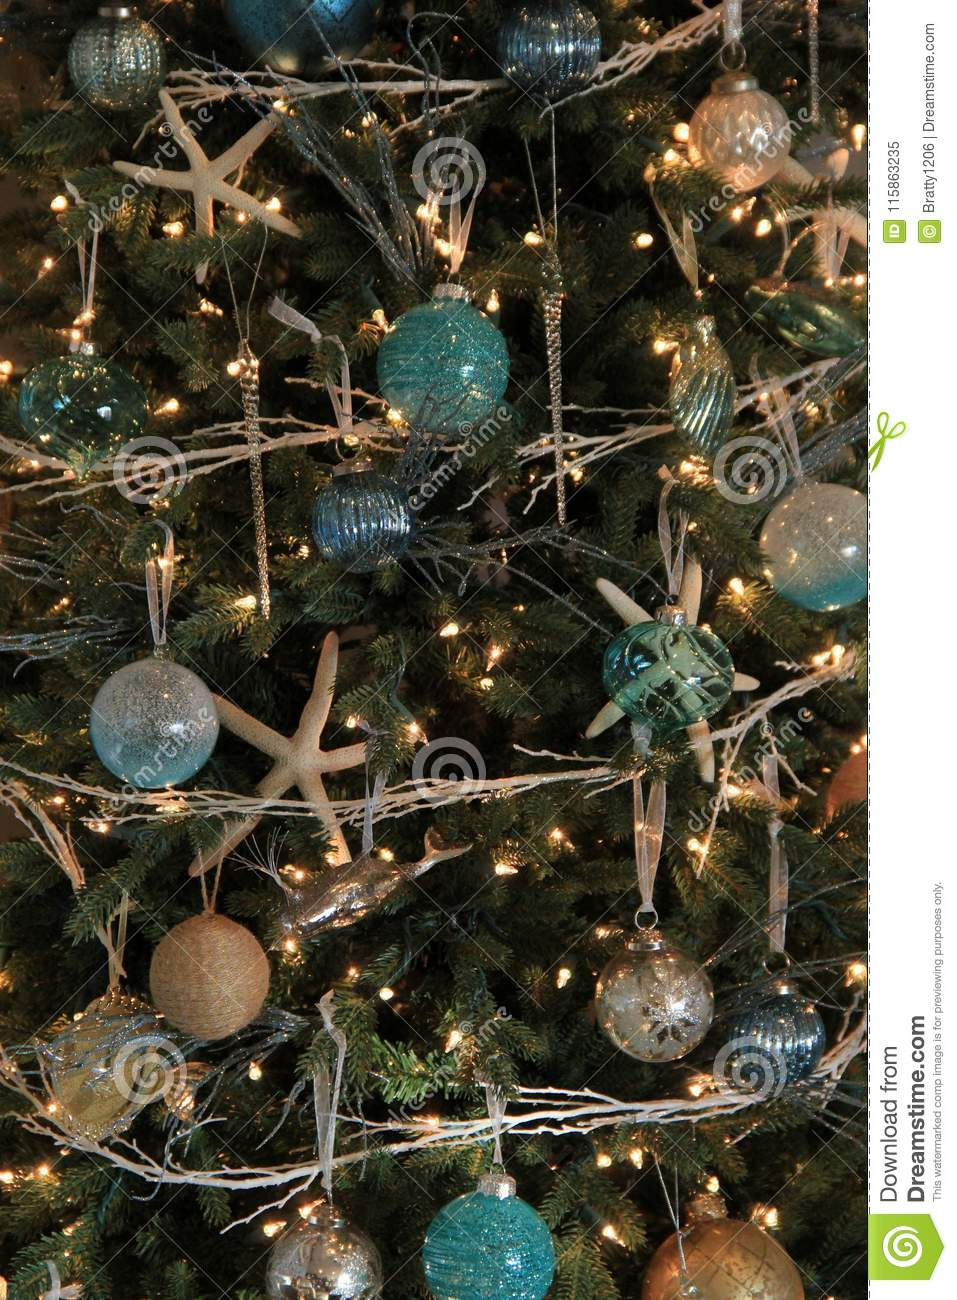 Gorgeous Christmas Tree With Seashore Theme Of Starfish And Other